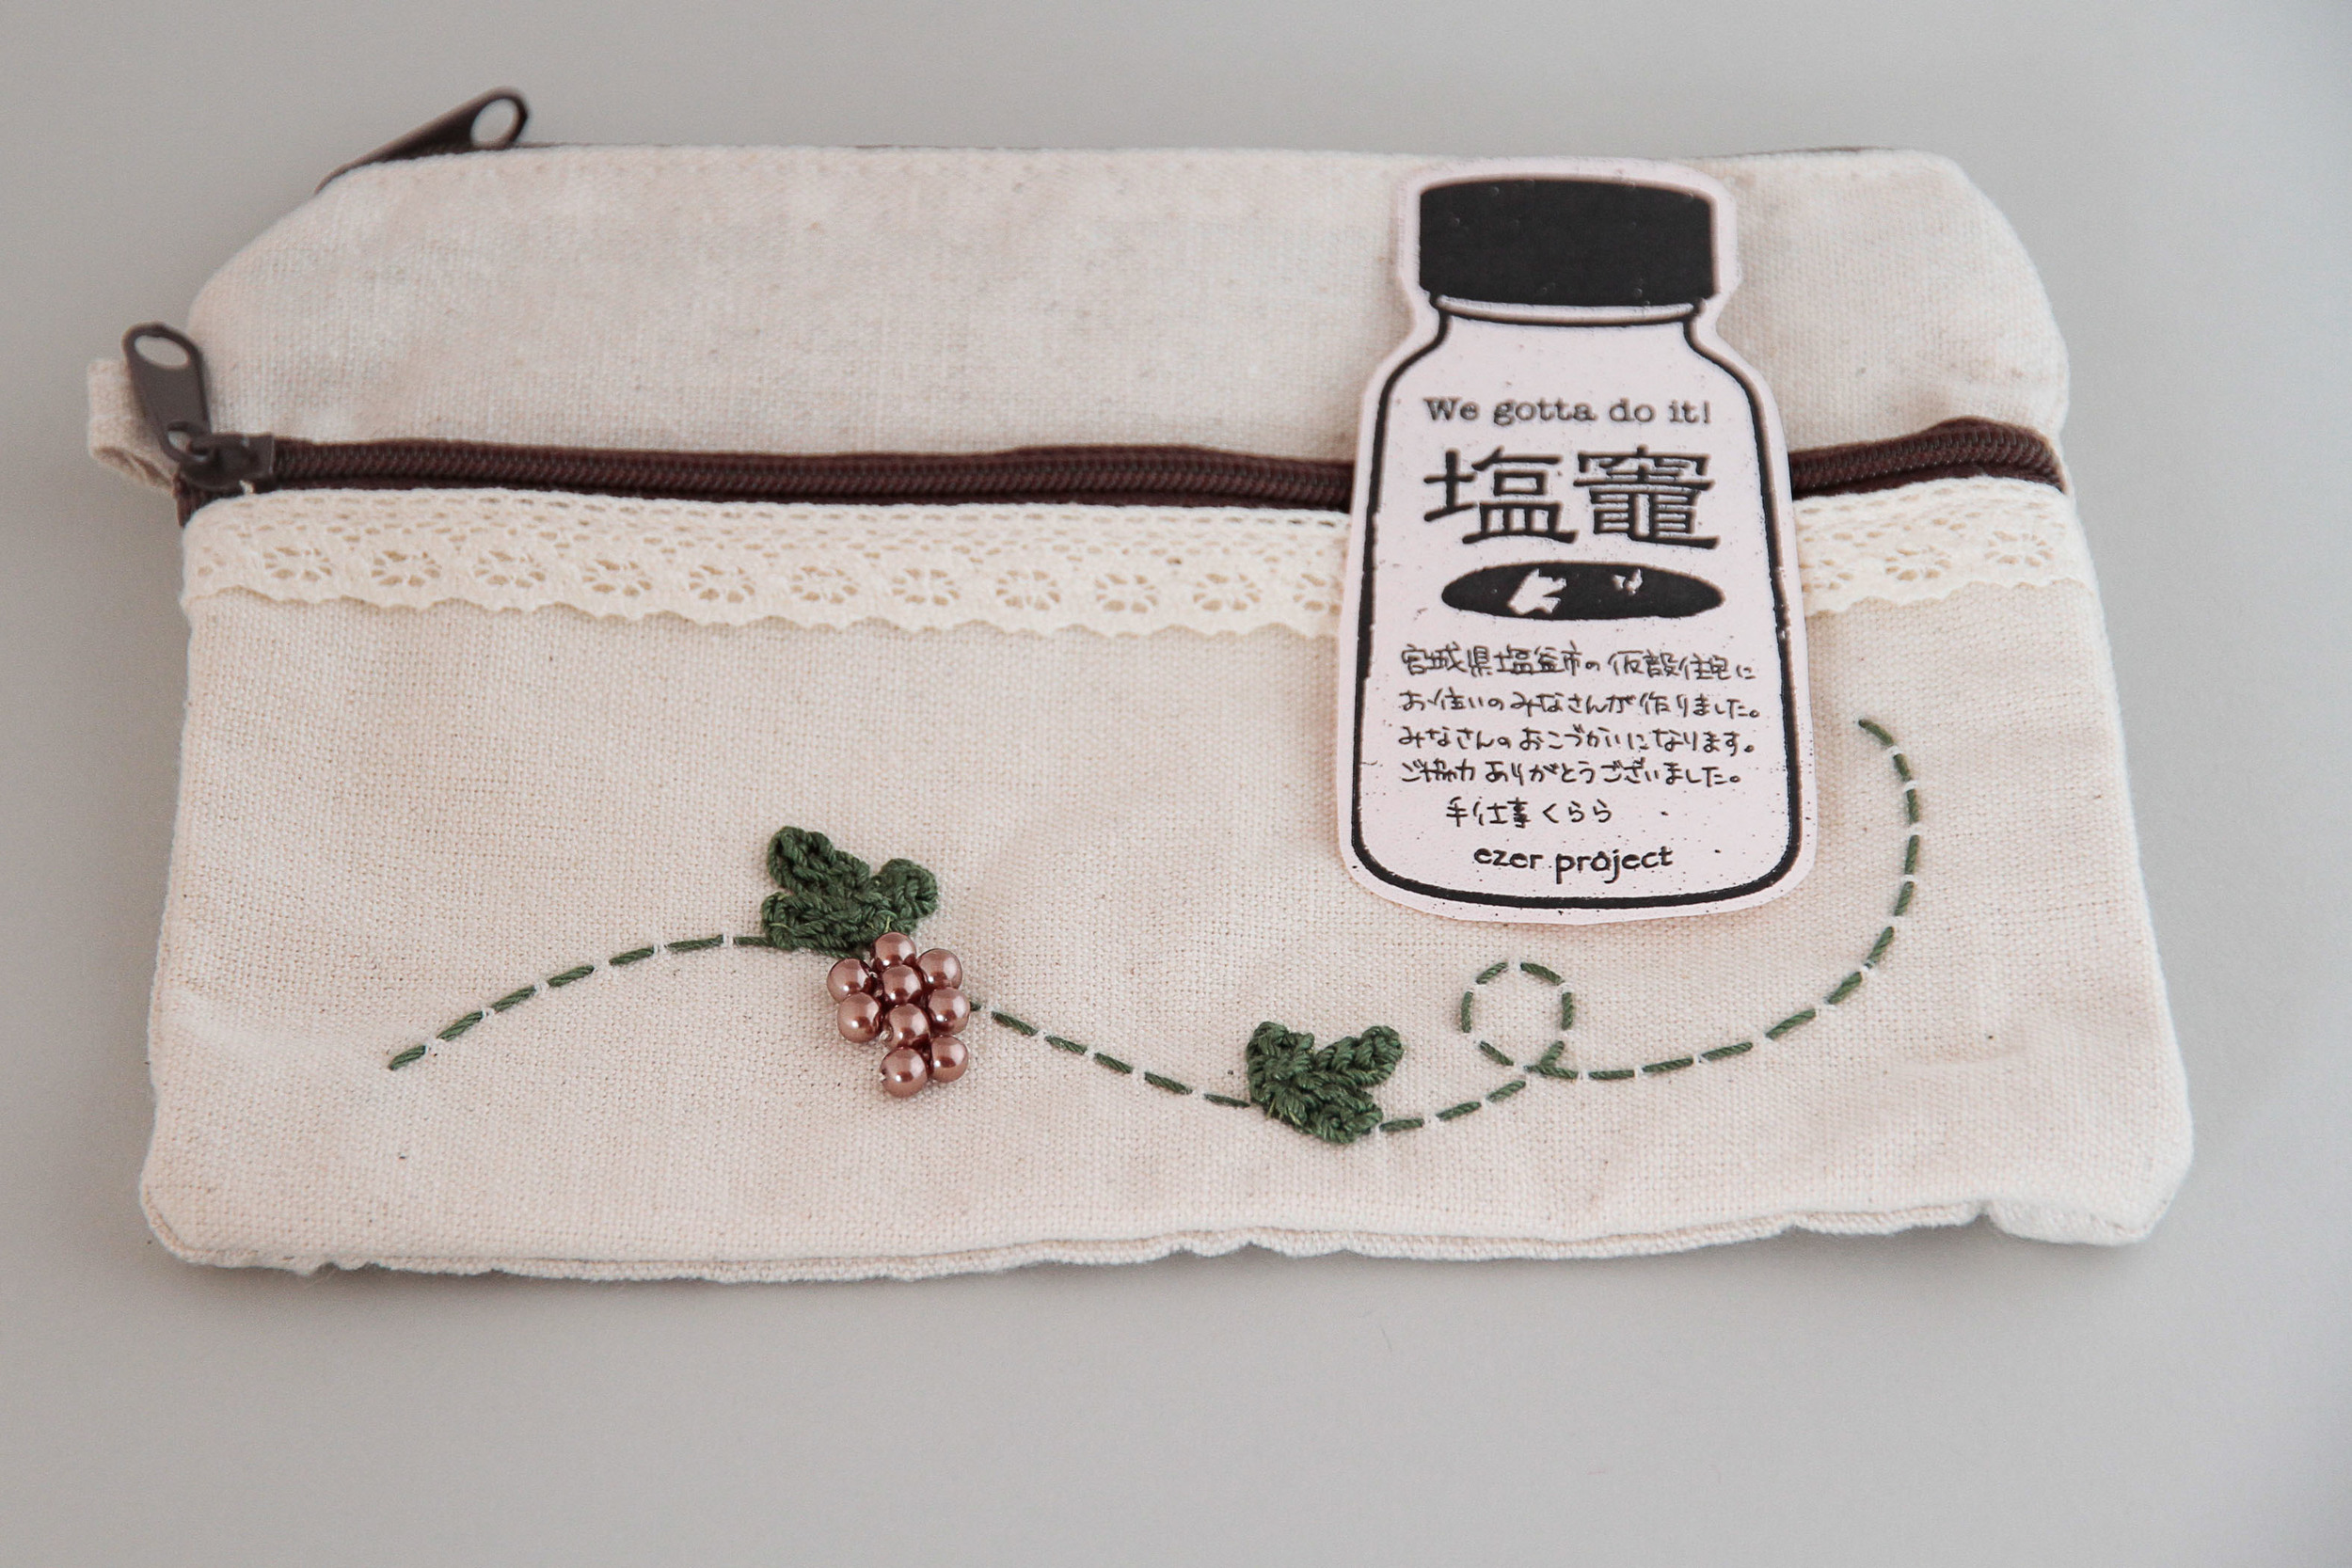 Small purse with embroidery